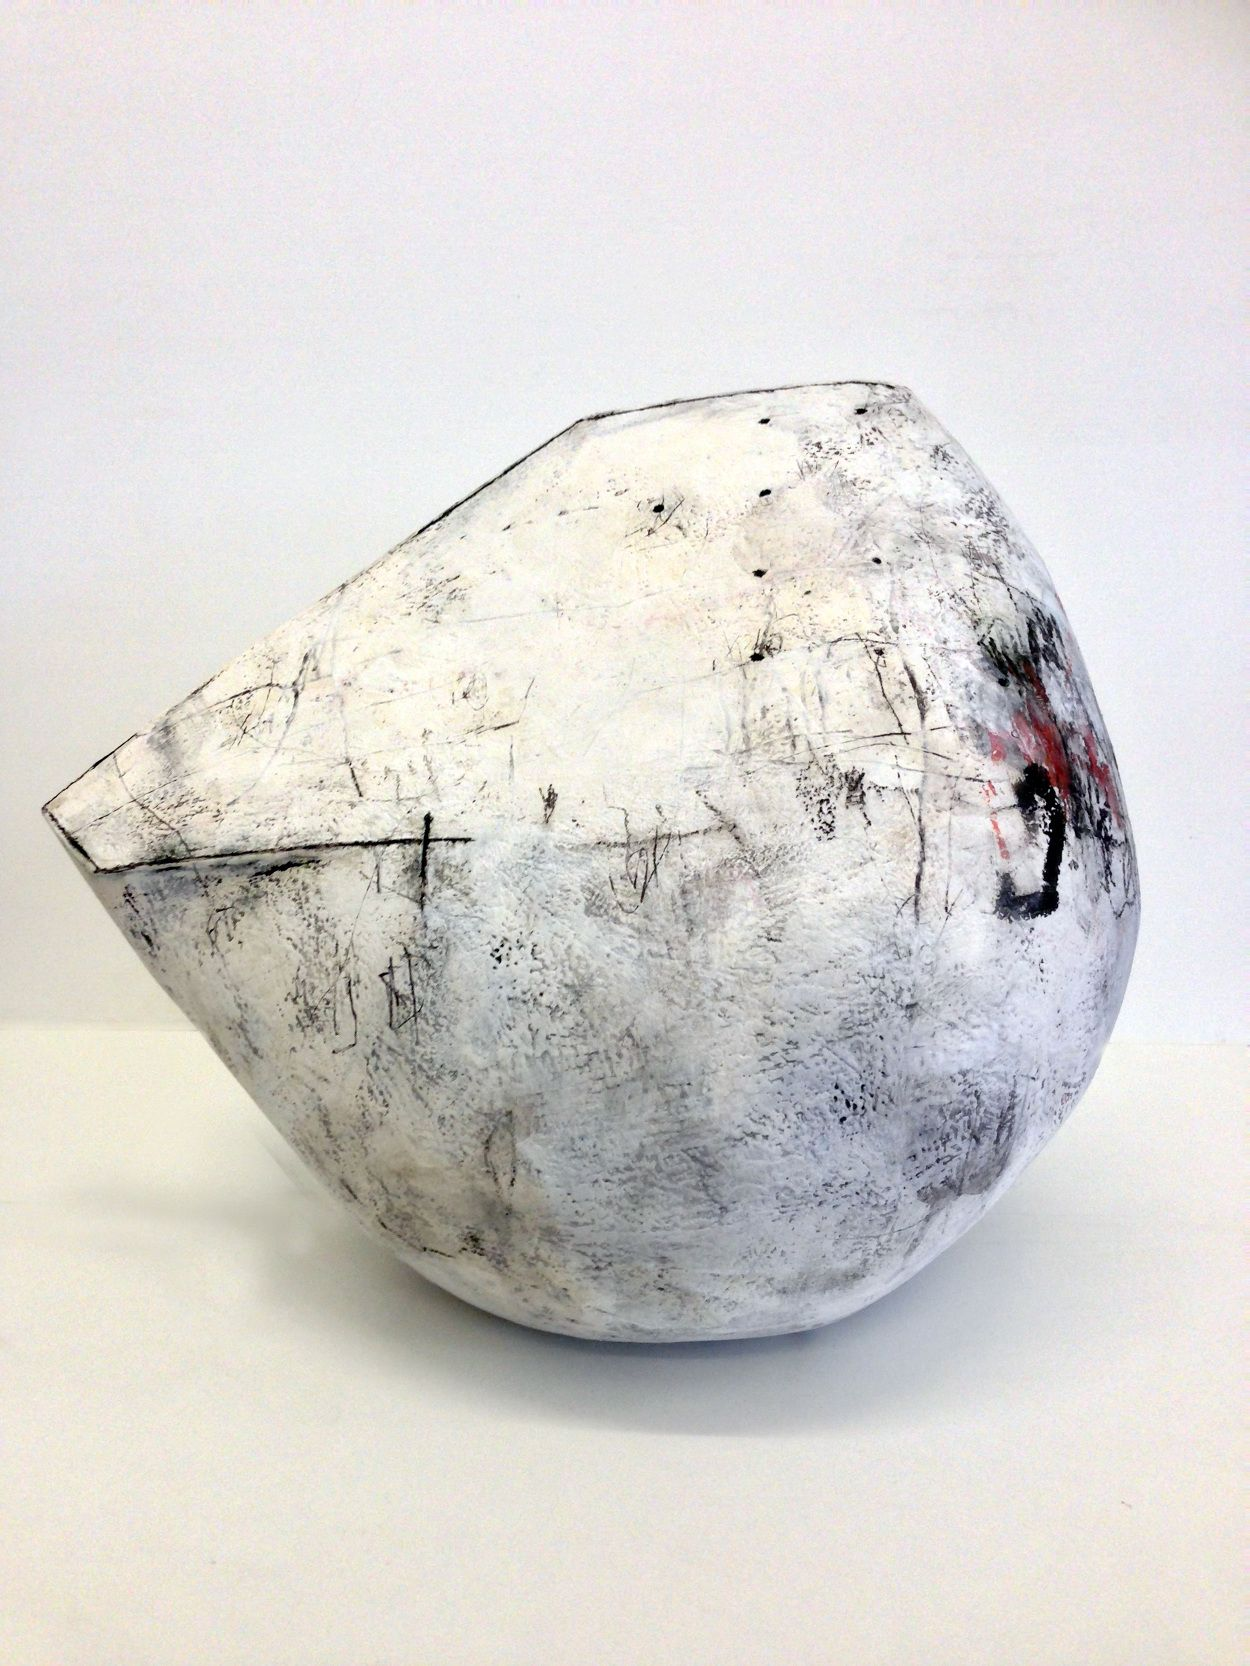 New Collection Of Ceramic Sculpture To Be Launched At Ceramic Art London 2017 Morphology Definition Of Morphol Ceramic Sculpture Ceramic Art Sculpture Painting